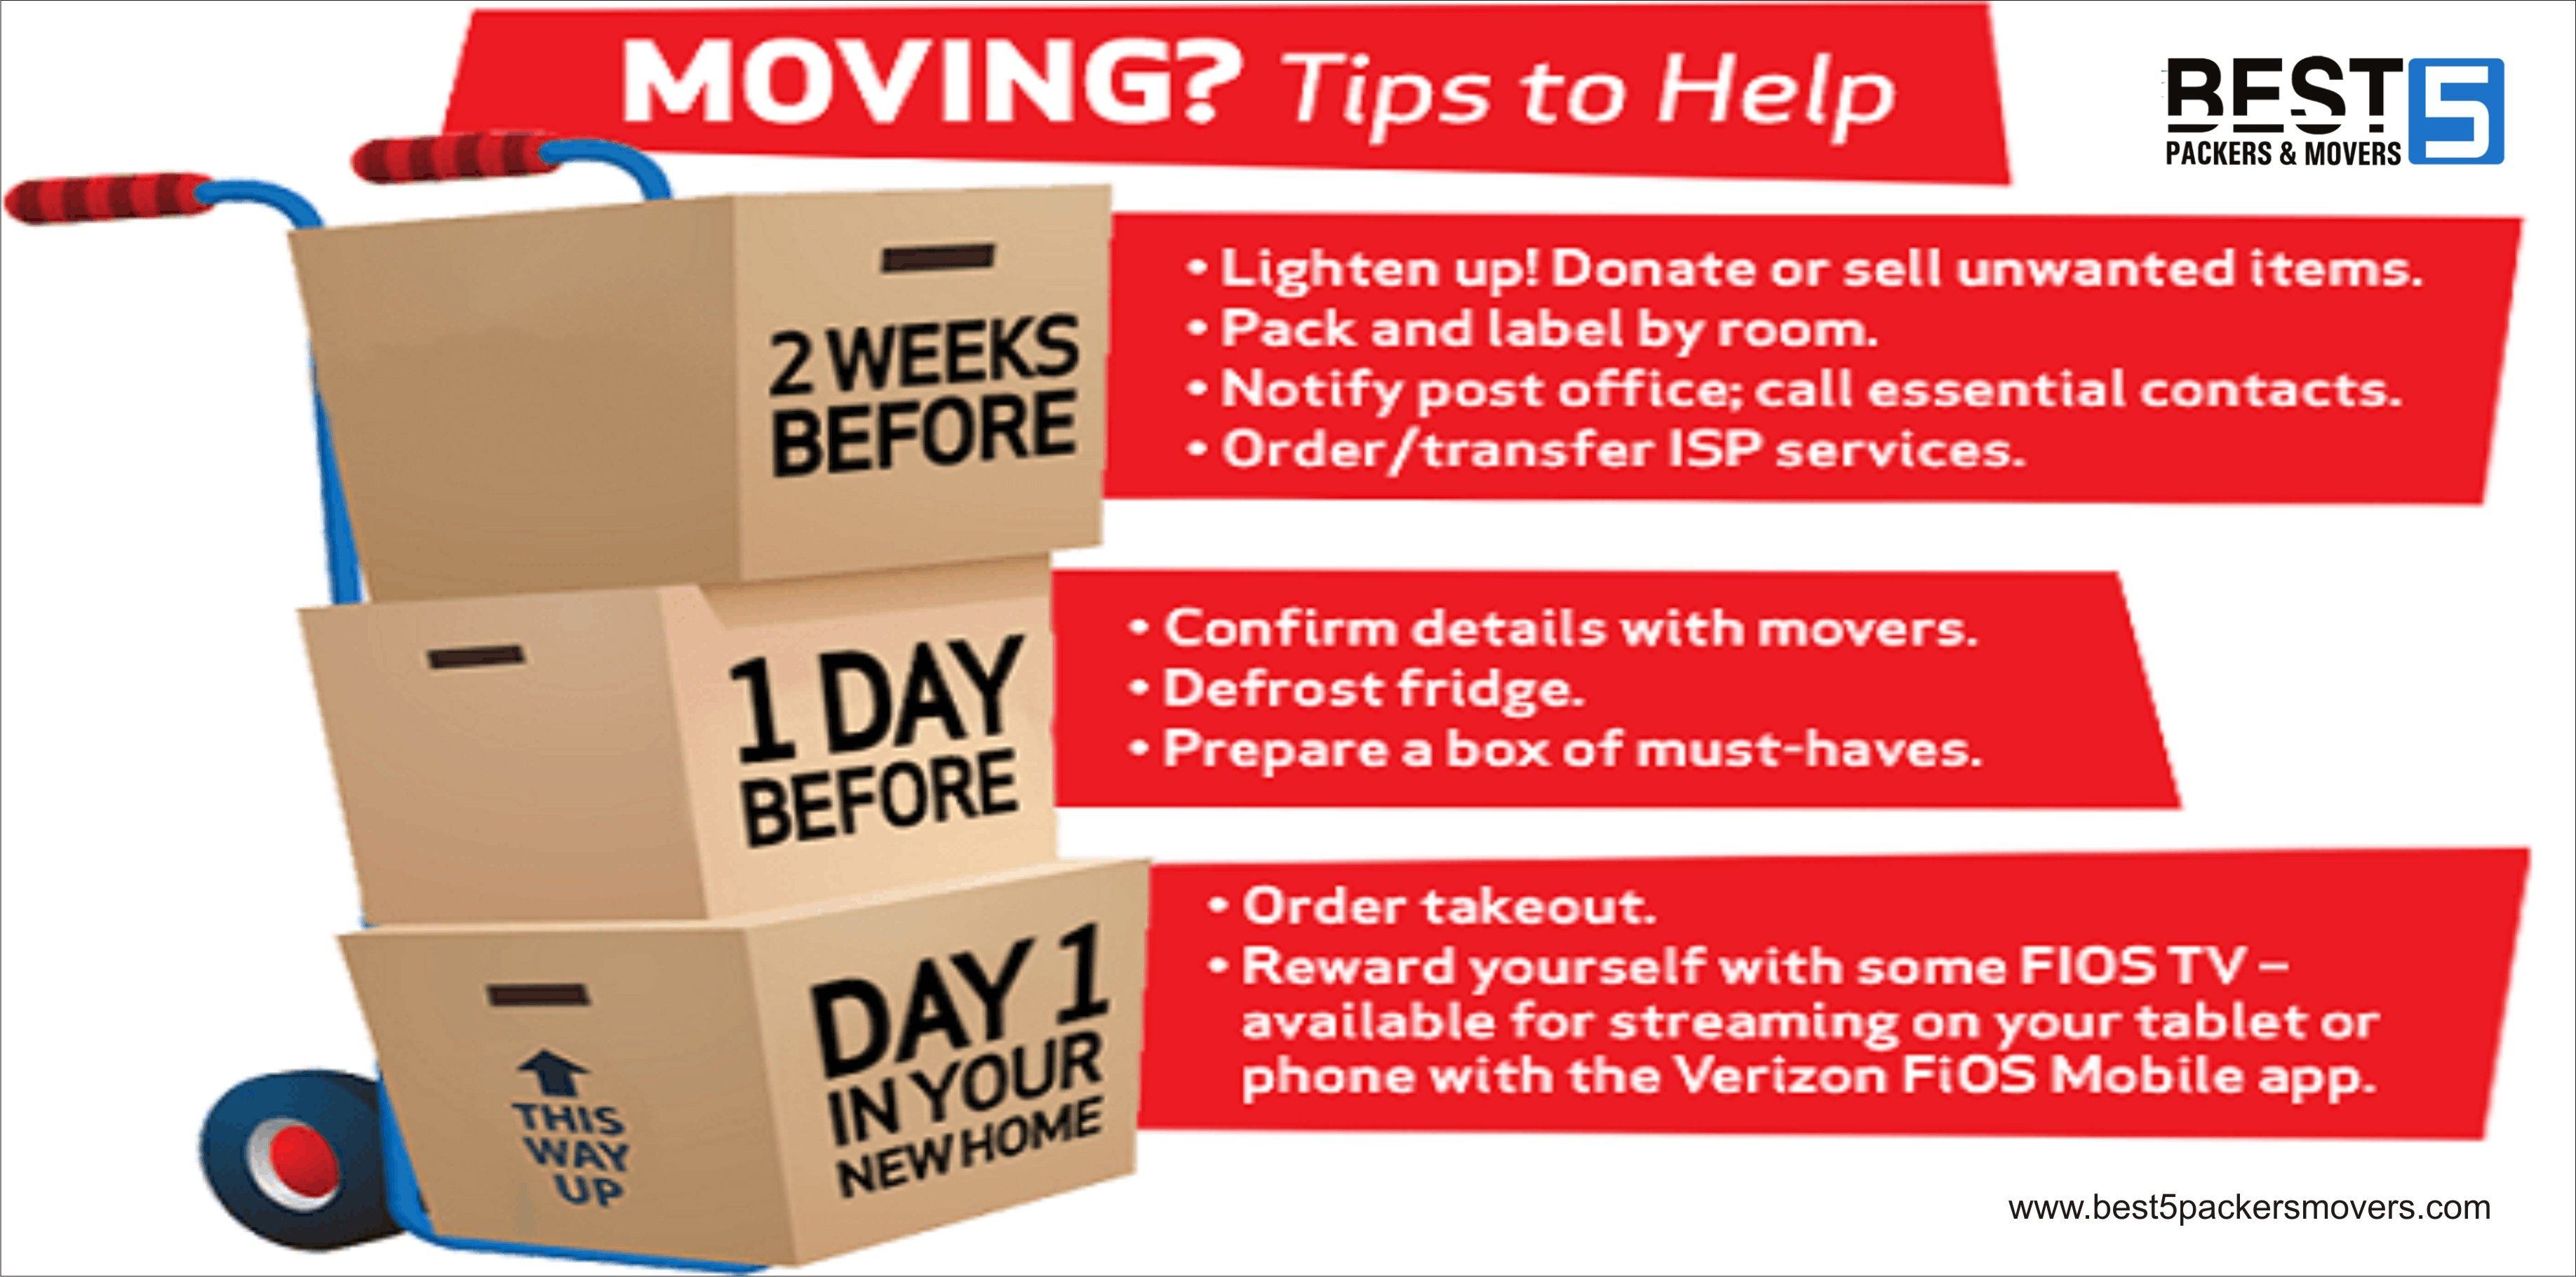 Moving House Soon? Here are some things you should be aware of.